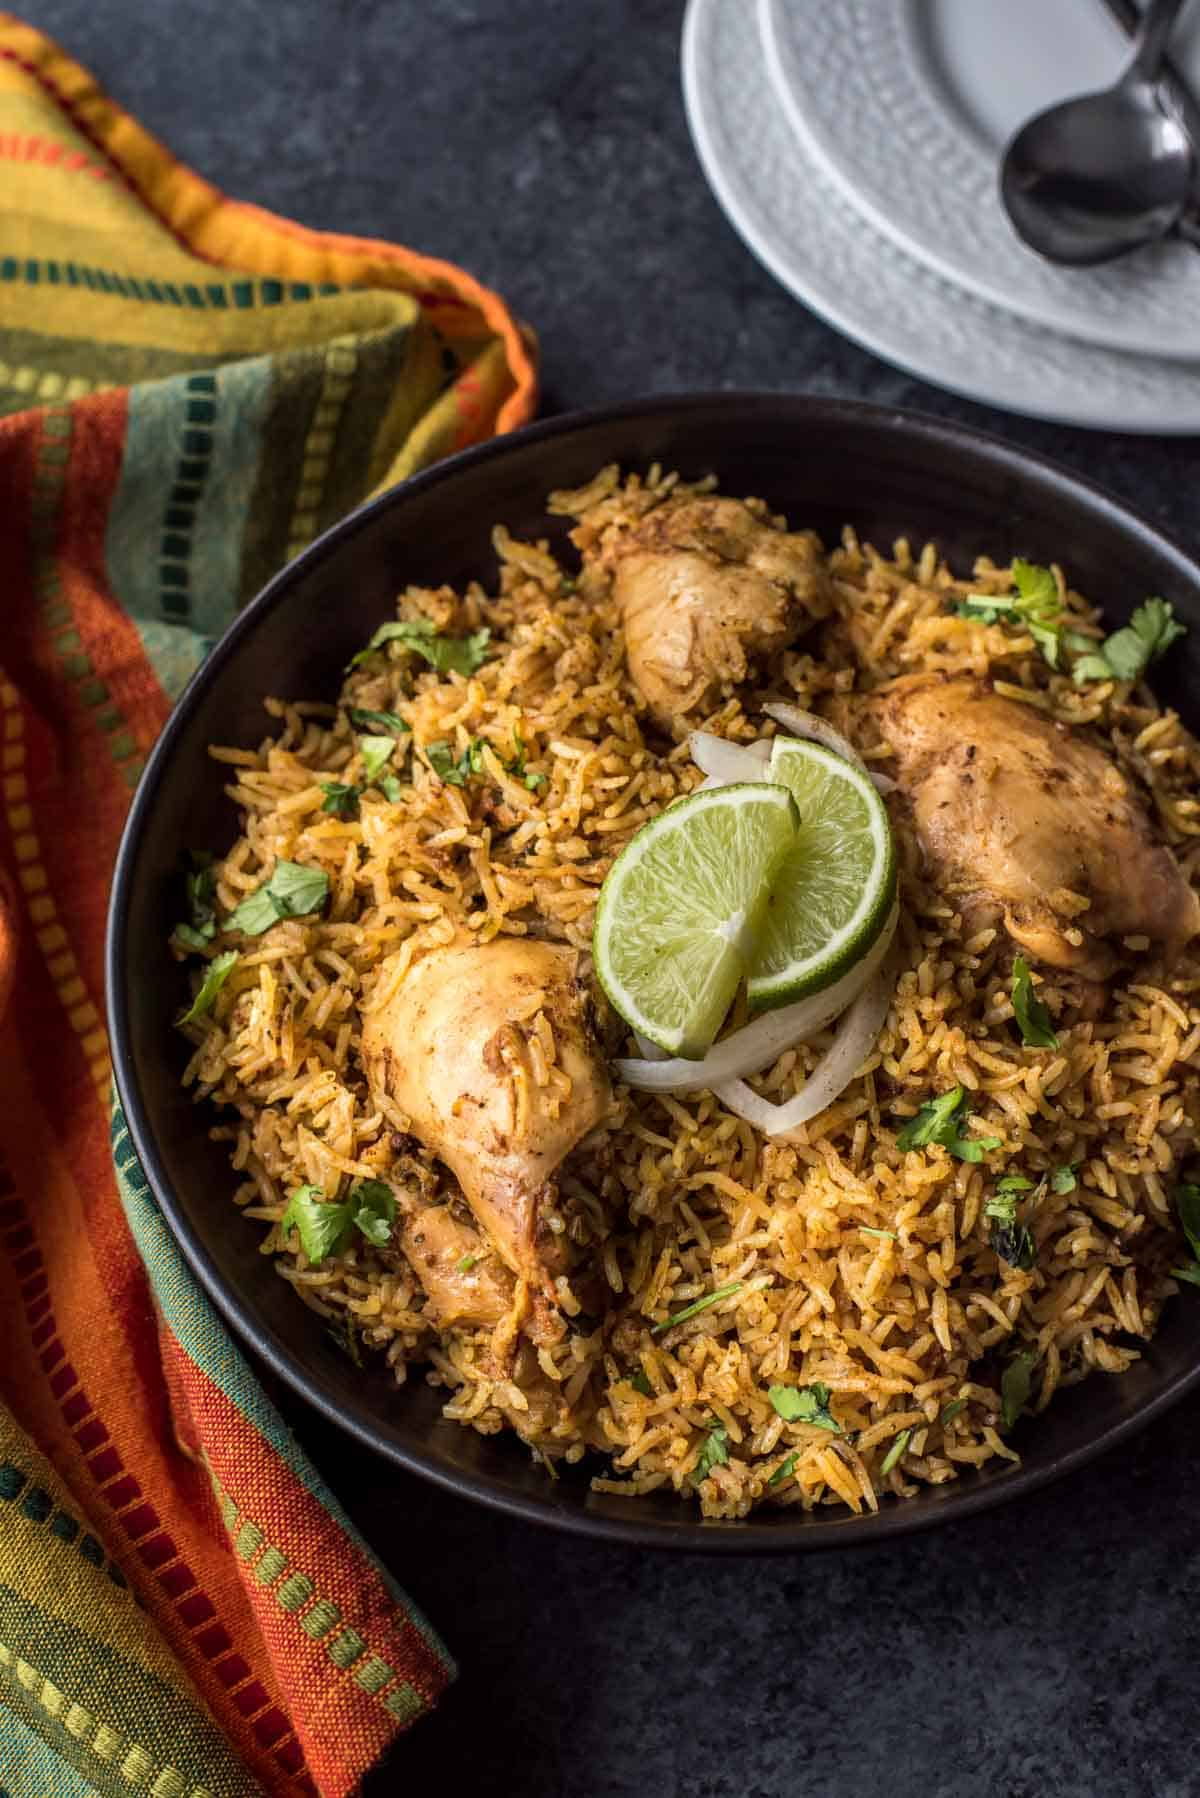 Chettinad Chicken biryani served with onions and lime in a black bowl